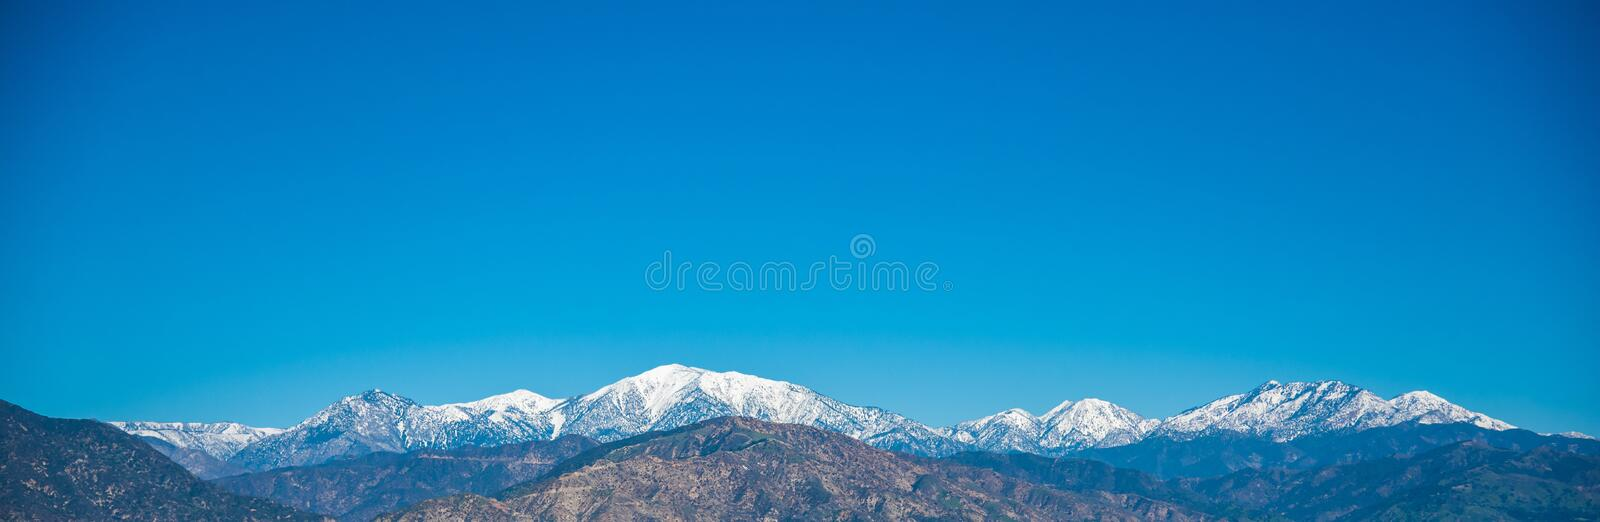 Clear day in Southern California. royalty free stock photography